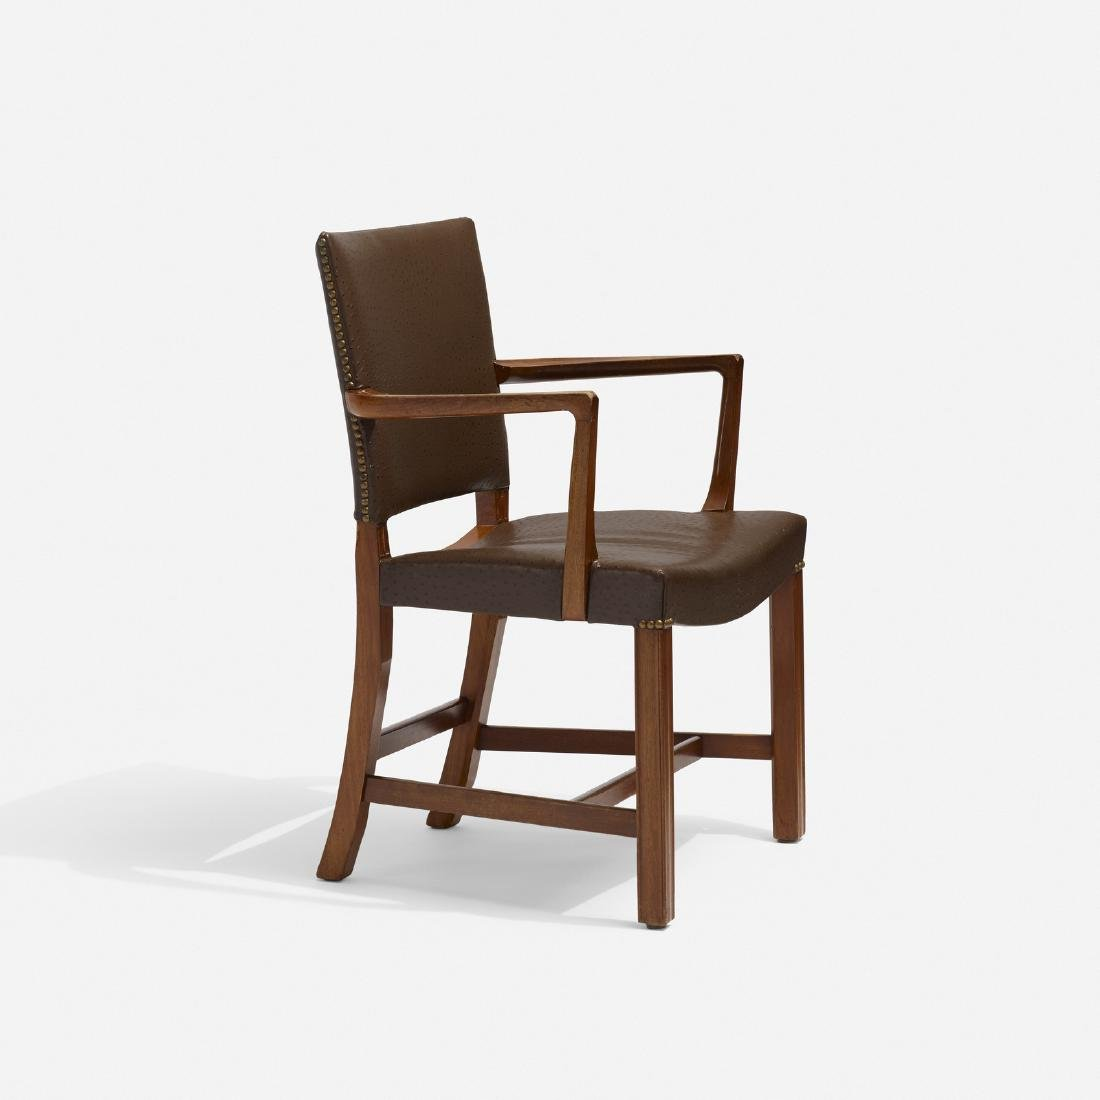 Kaare Klint, Barcelona armchair, model 3758A